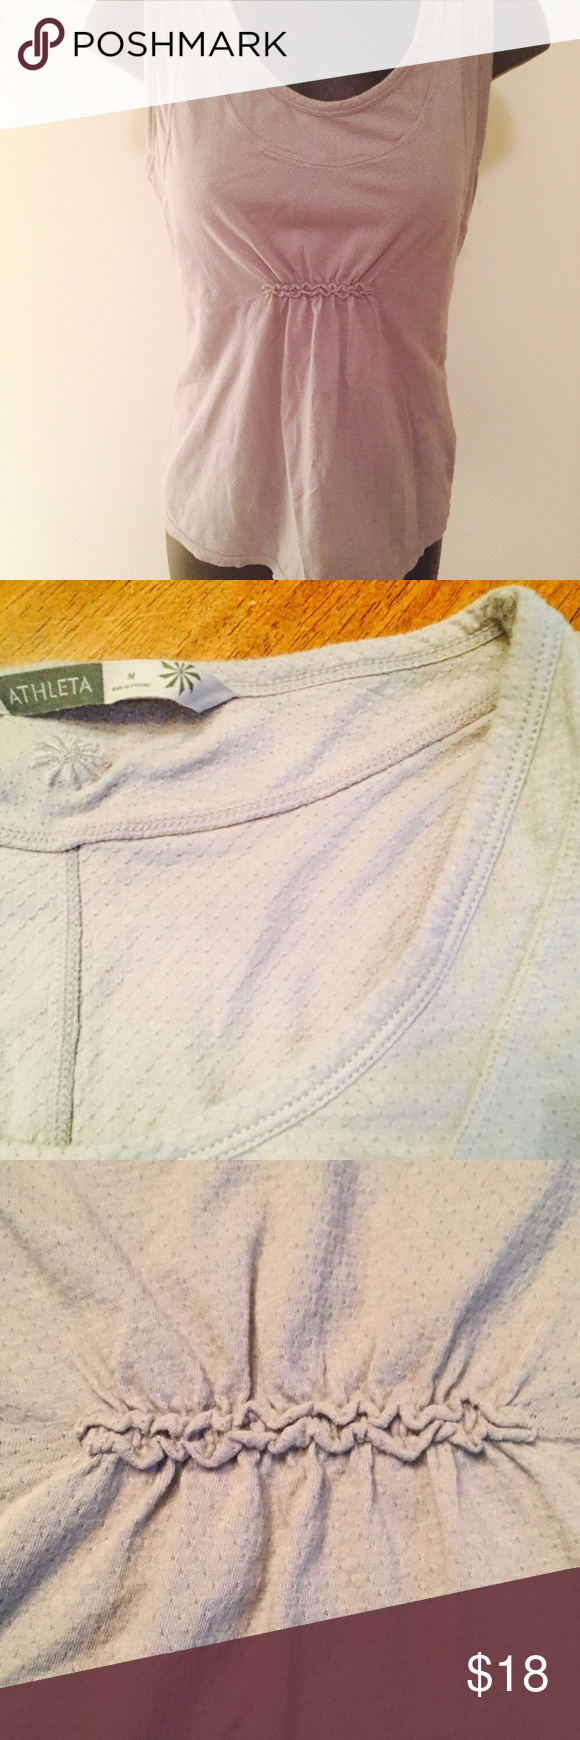 Athleta Light Grey Tank / Size Medium Athleta Tank/ Light Grey/ Size Medium/ Flattering Ruching right under chest, gives you room in the tummy. In Great Used Condition Athleta Tops Tank Tops